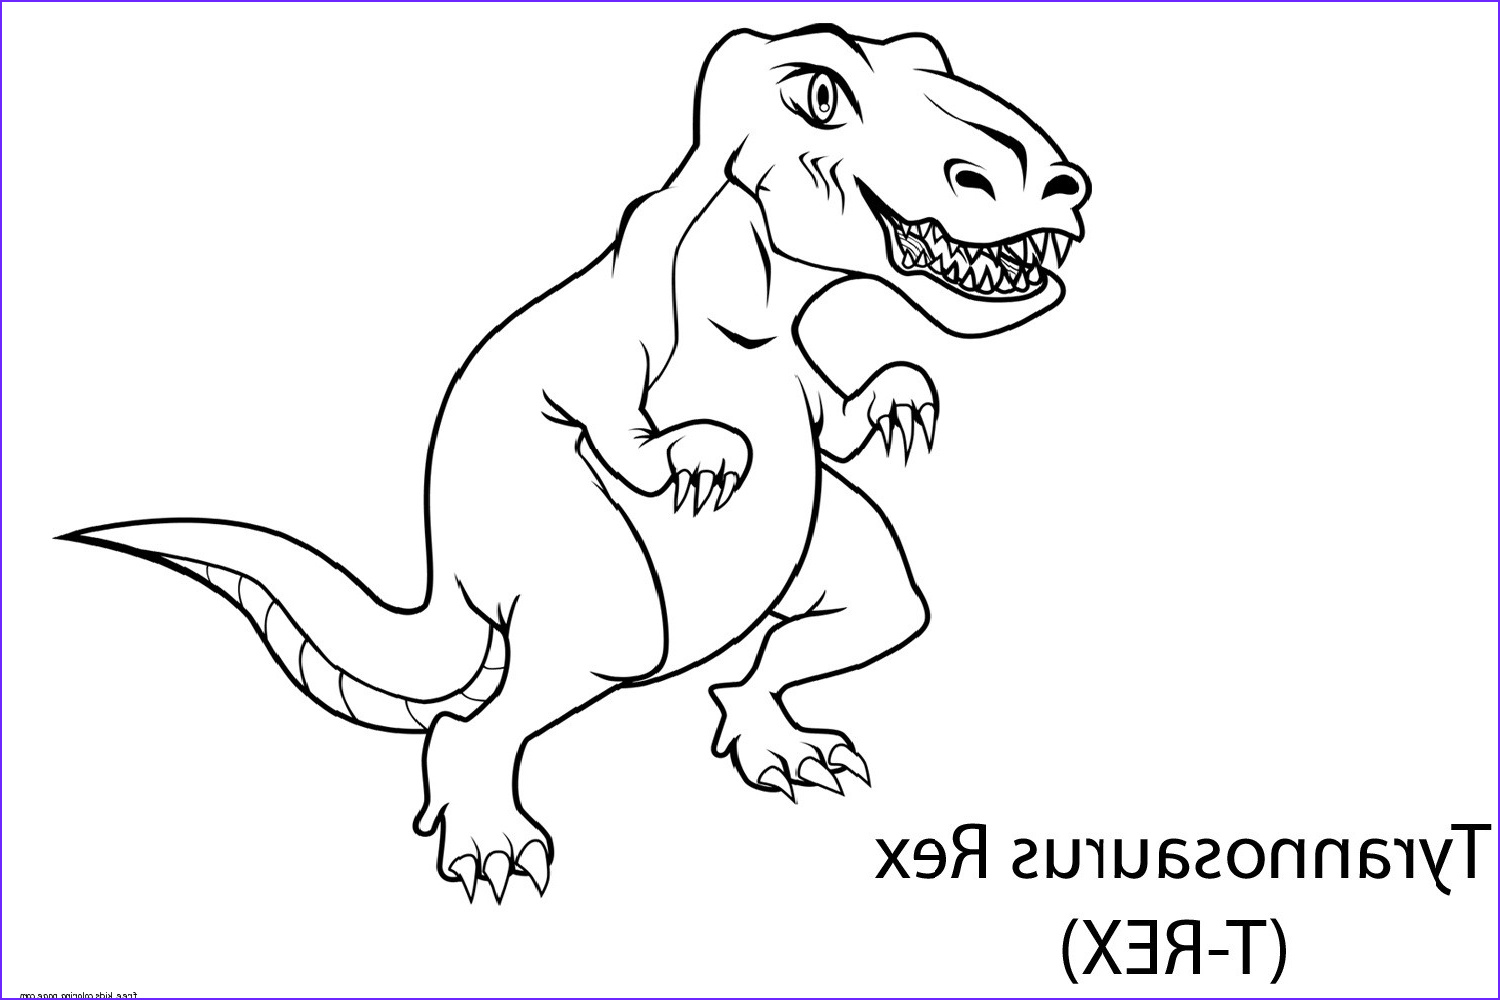 dinosaur tyrannosaurus rex coloring book pages for kids